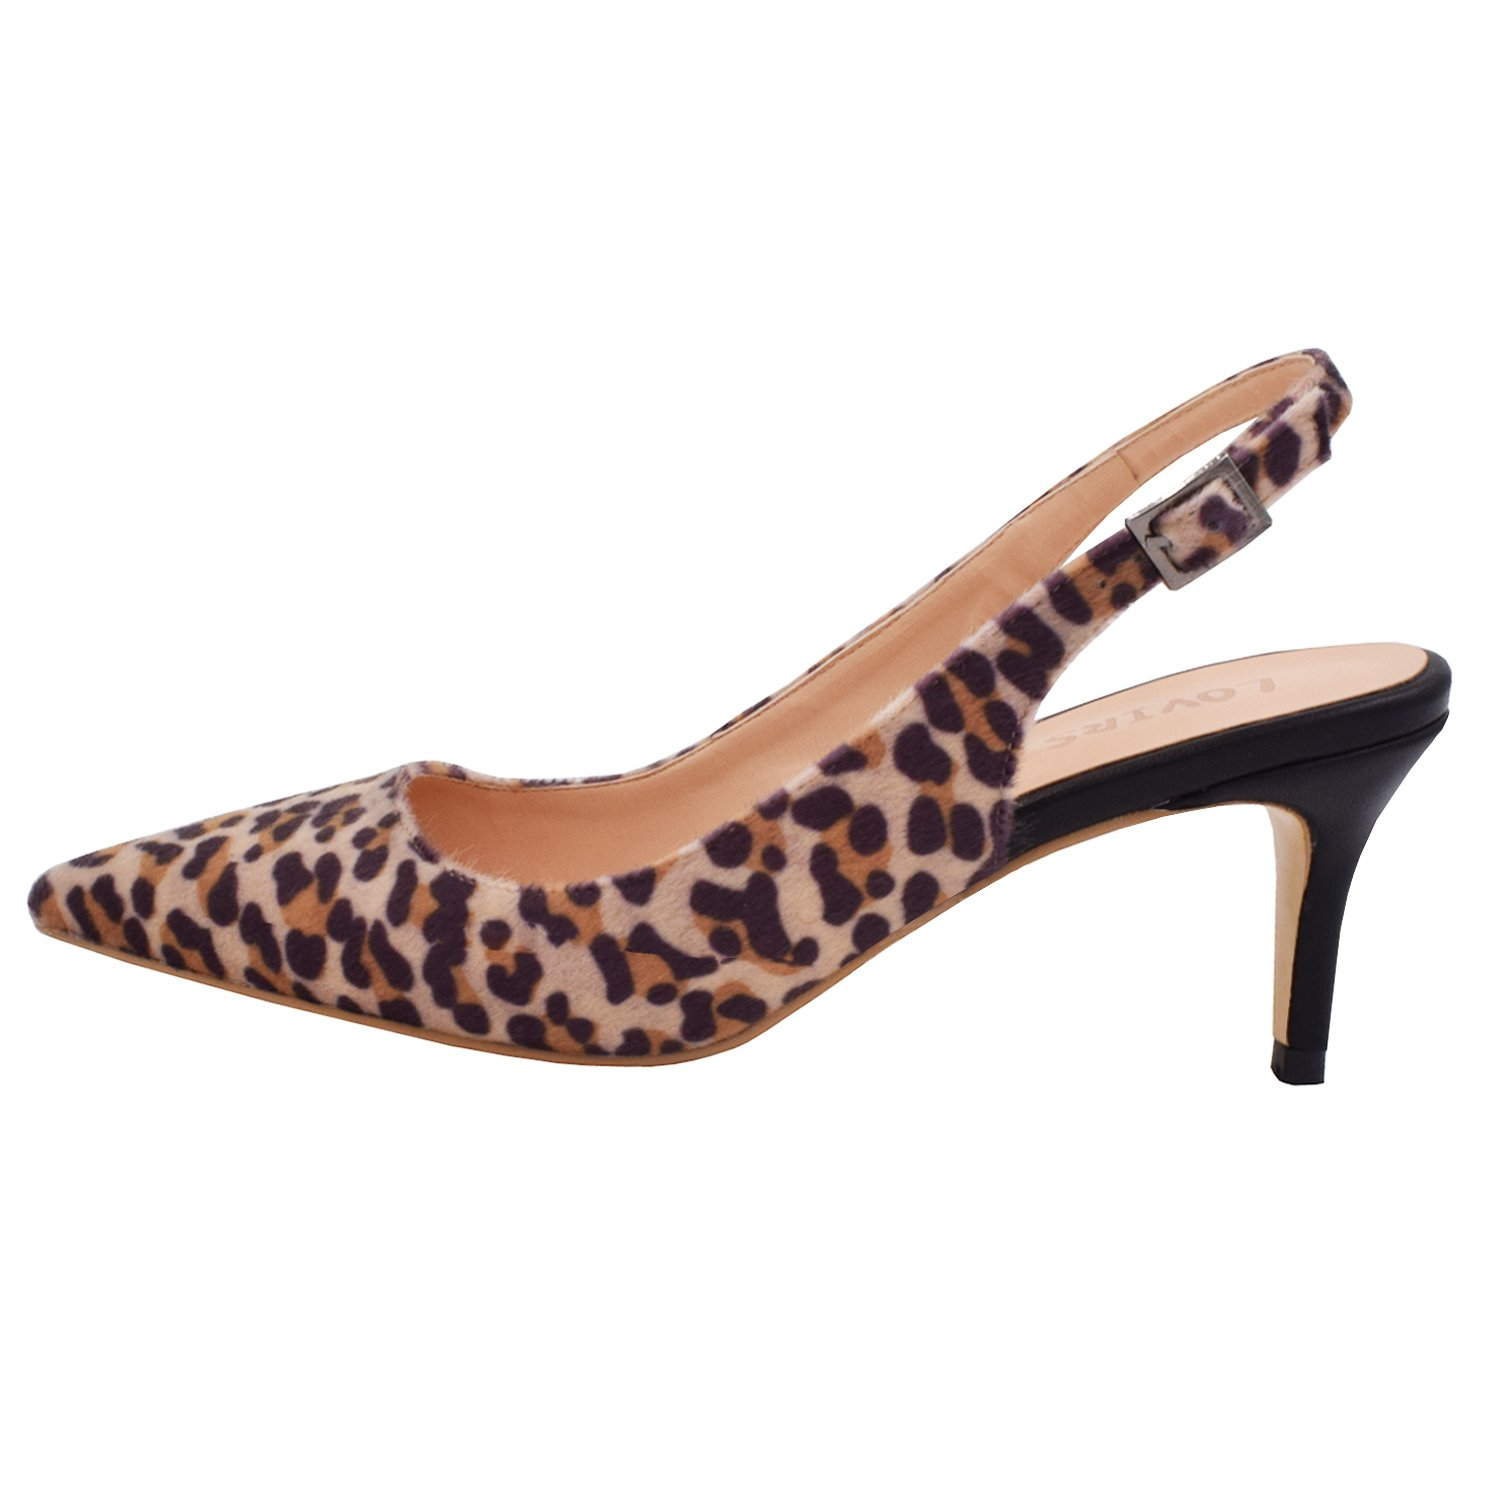 Lovirs Womens Slingback Ankle Strap Sandals Stiletto Mid-Heel Pointy Toe Pumps Shoes for Party Dress B077YXF4TR 5 B(M) US|Leopard-black